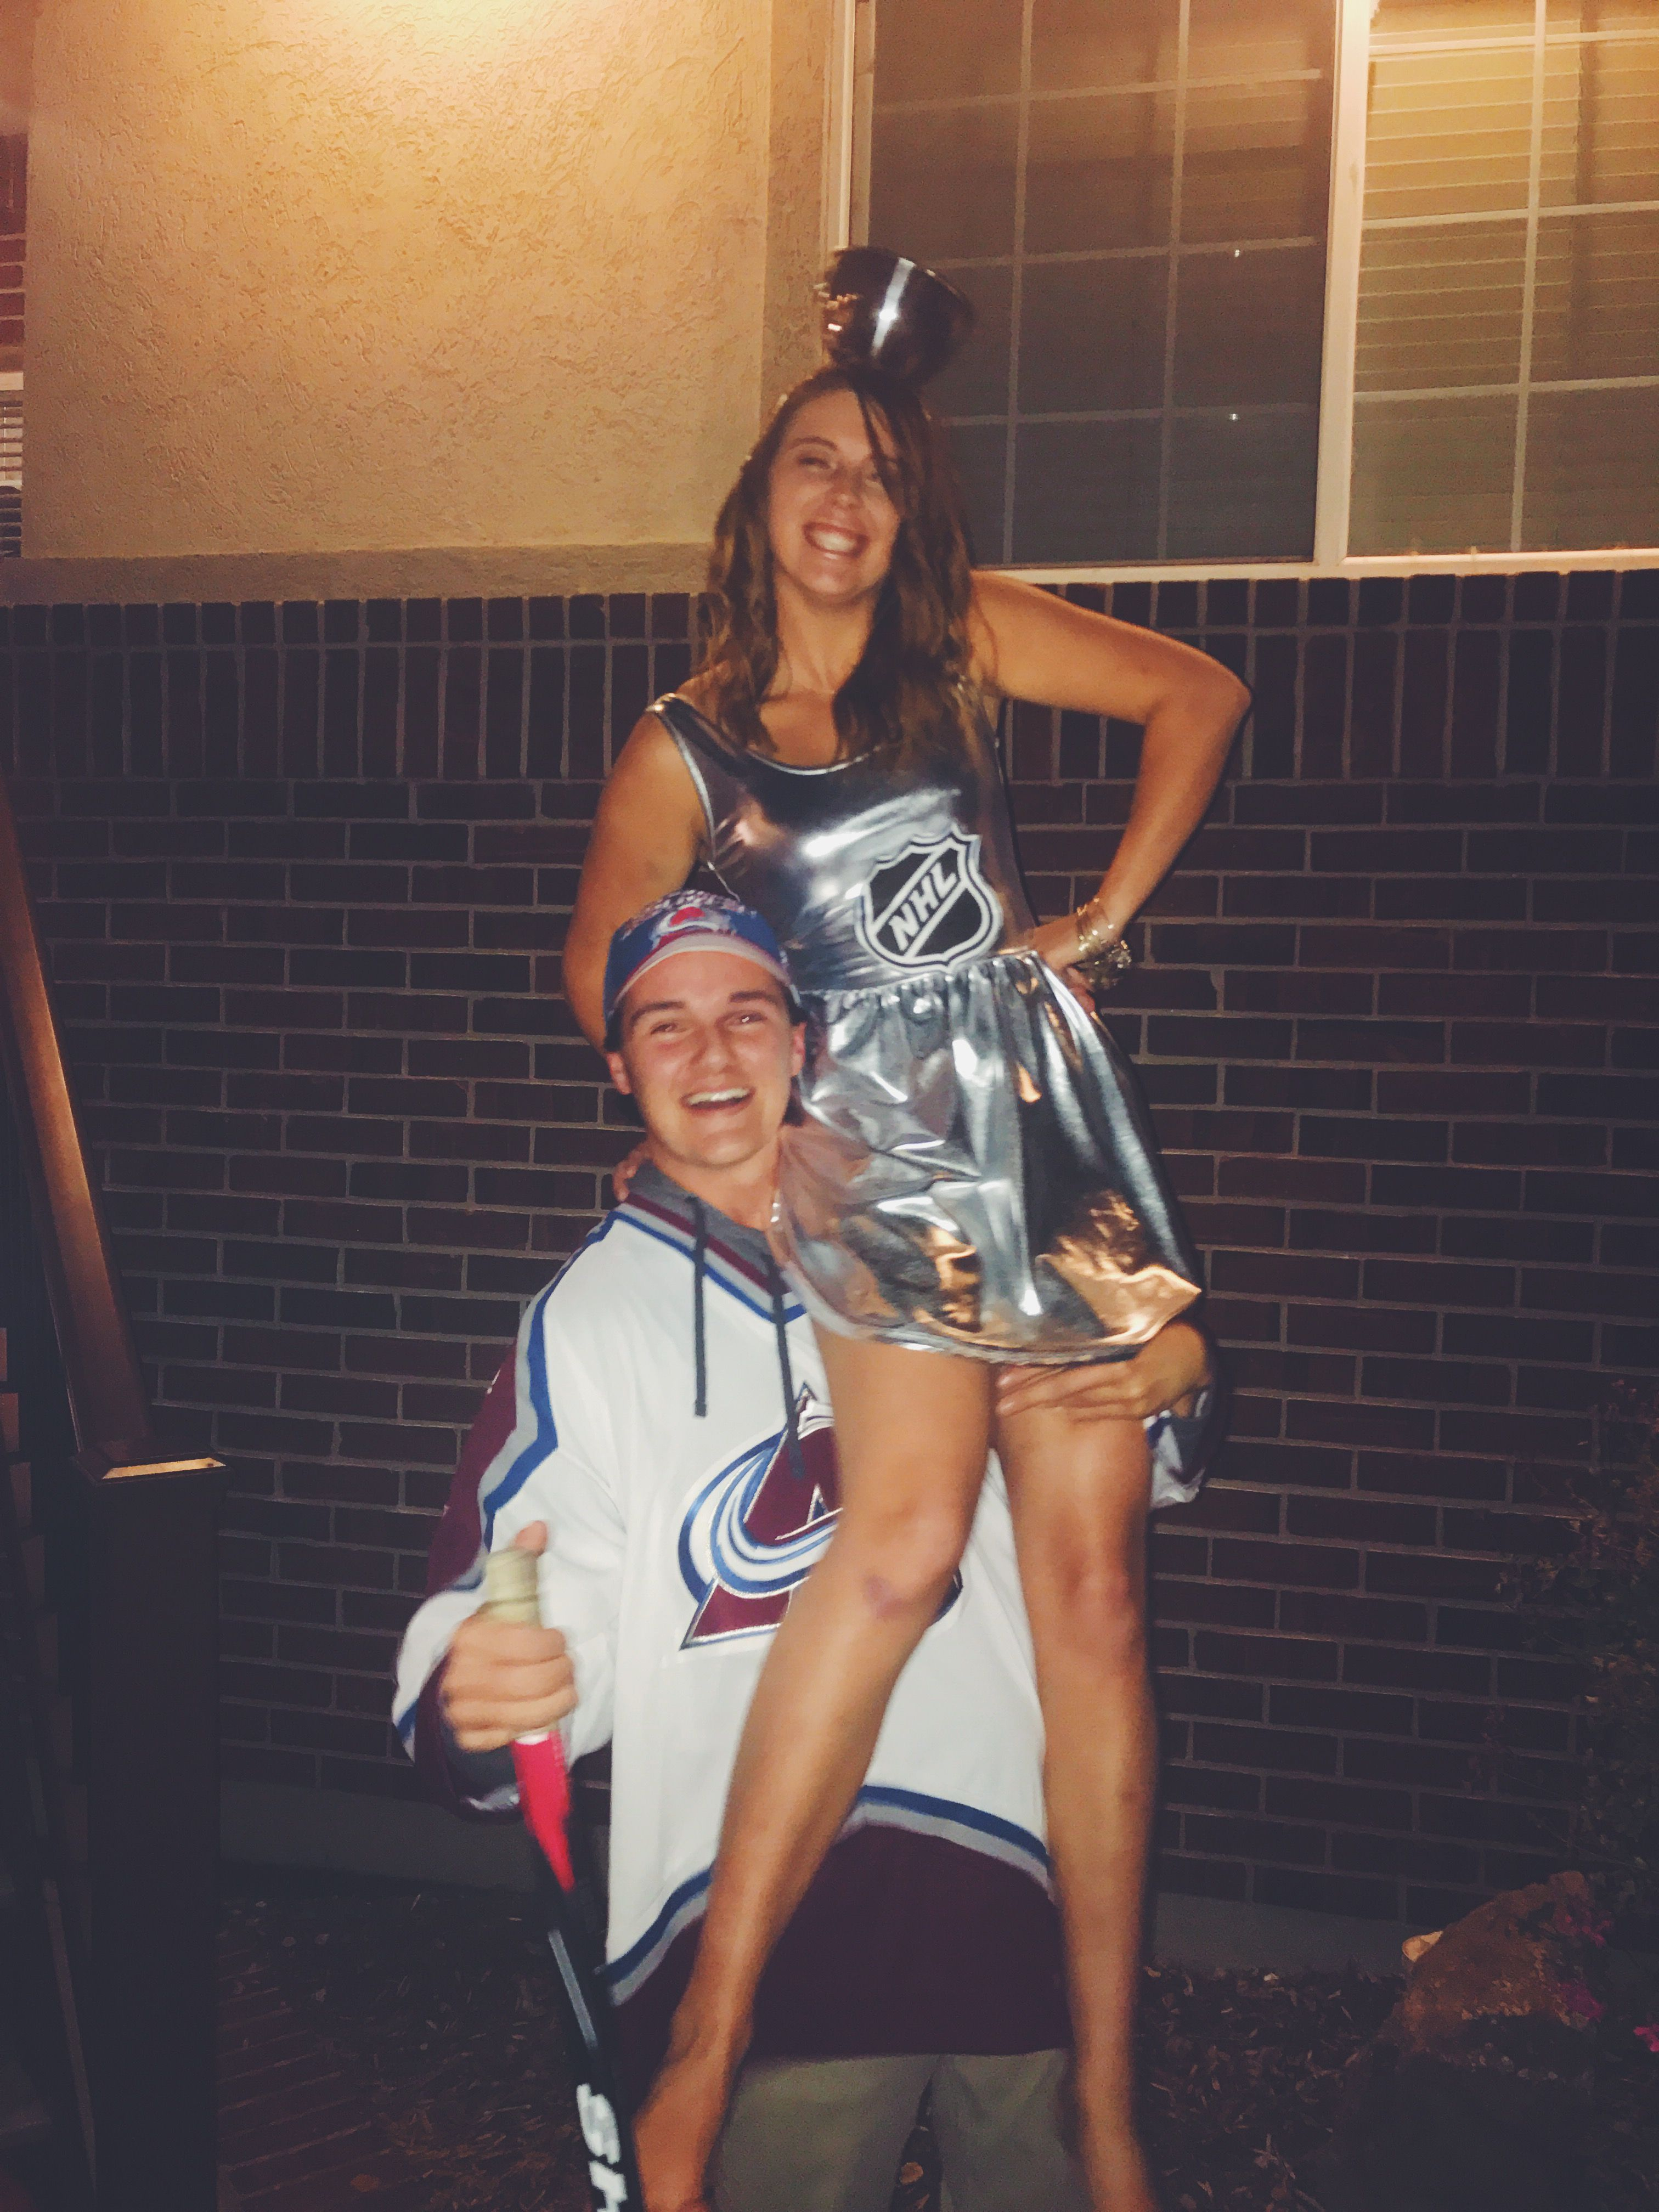 Stanley cup costume | Stanley cup costume | Pinterest | Costumes